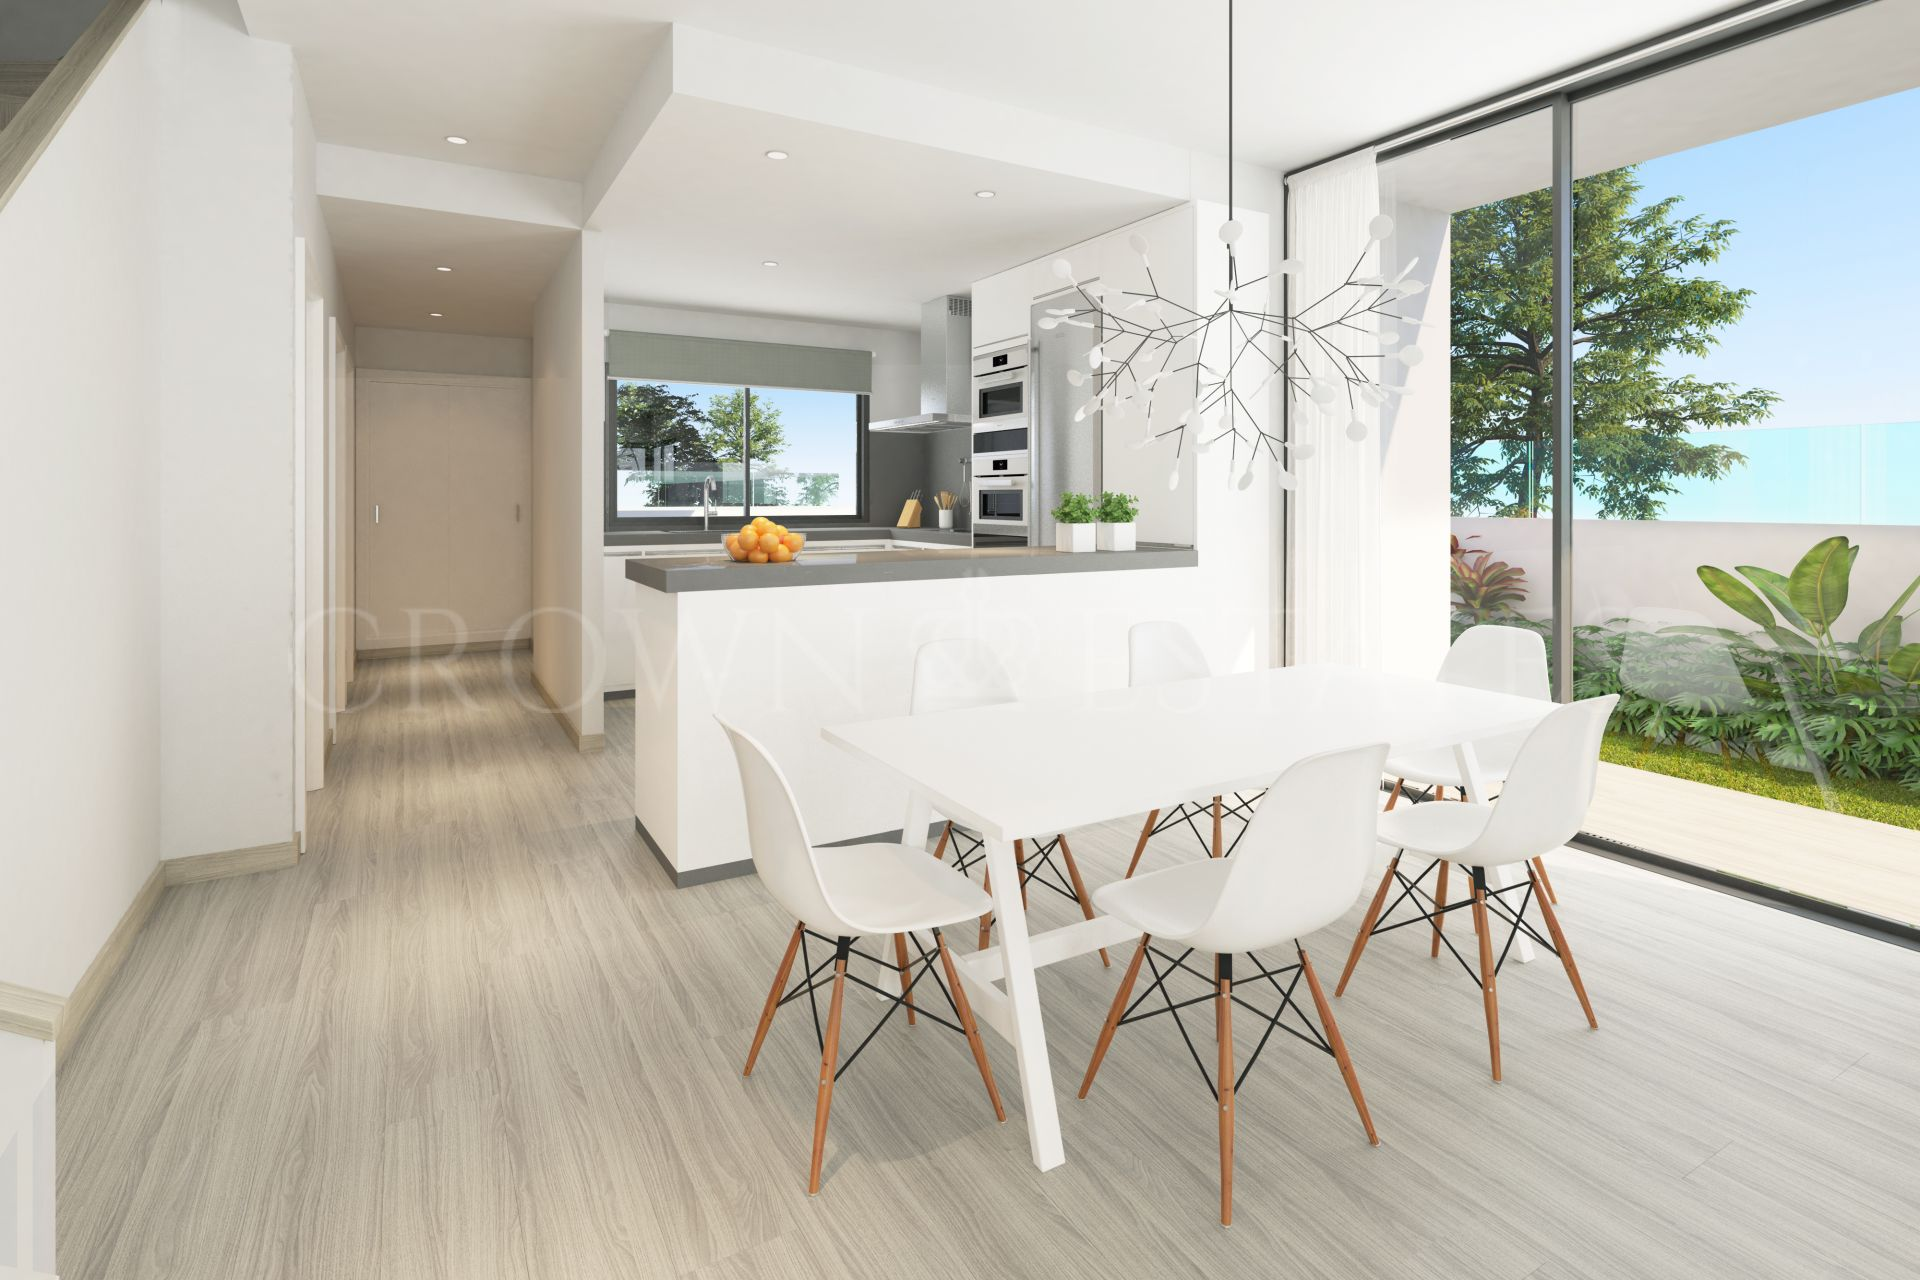 Oak 47, an elegant development of contemporary town homes only 3 minutes' walk from the beaches of Fuengirola & Mijas Costa.